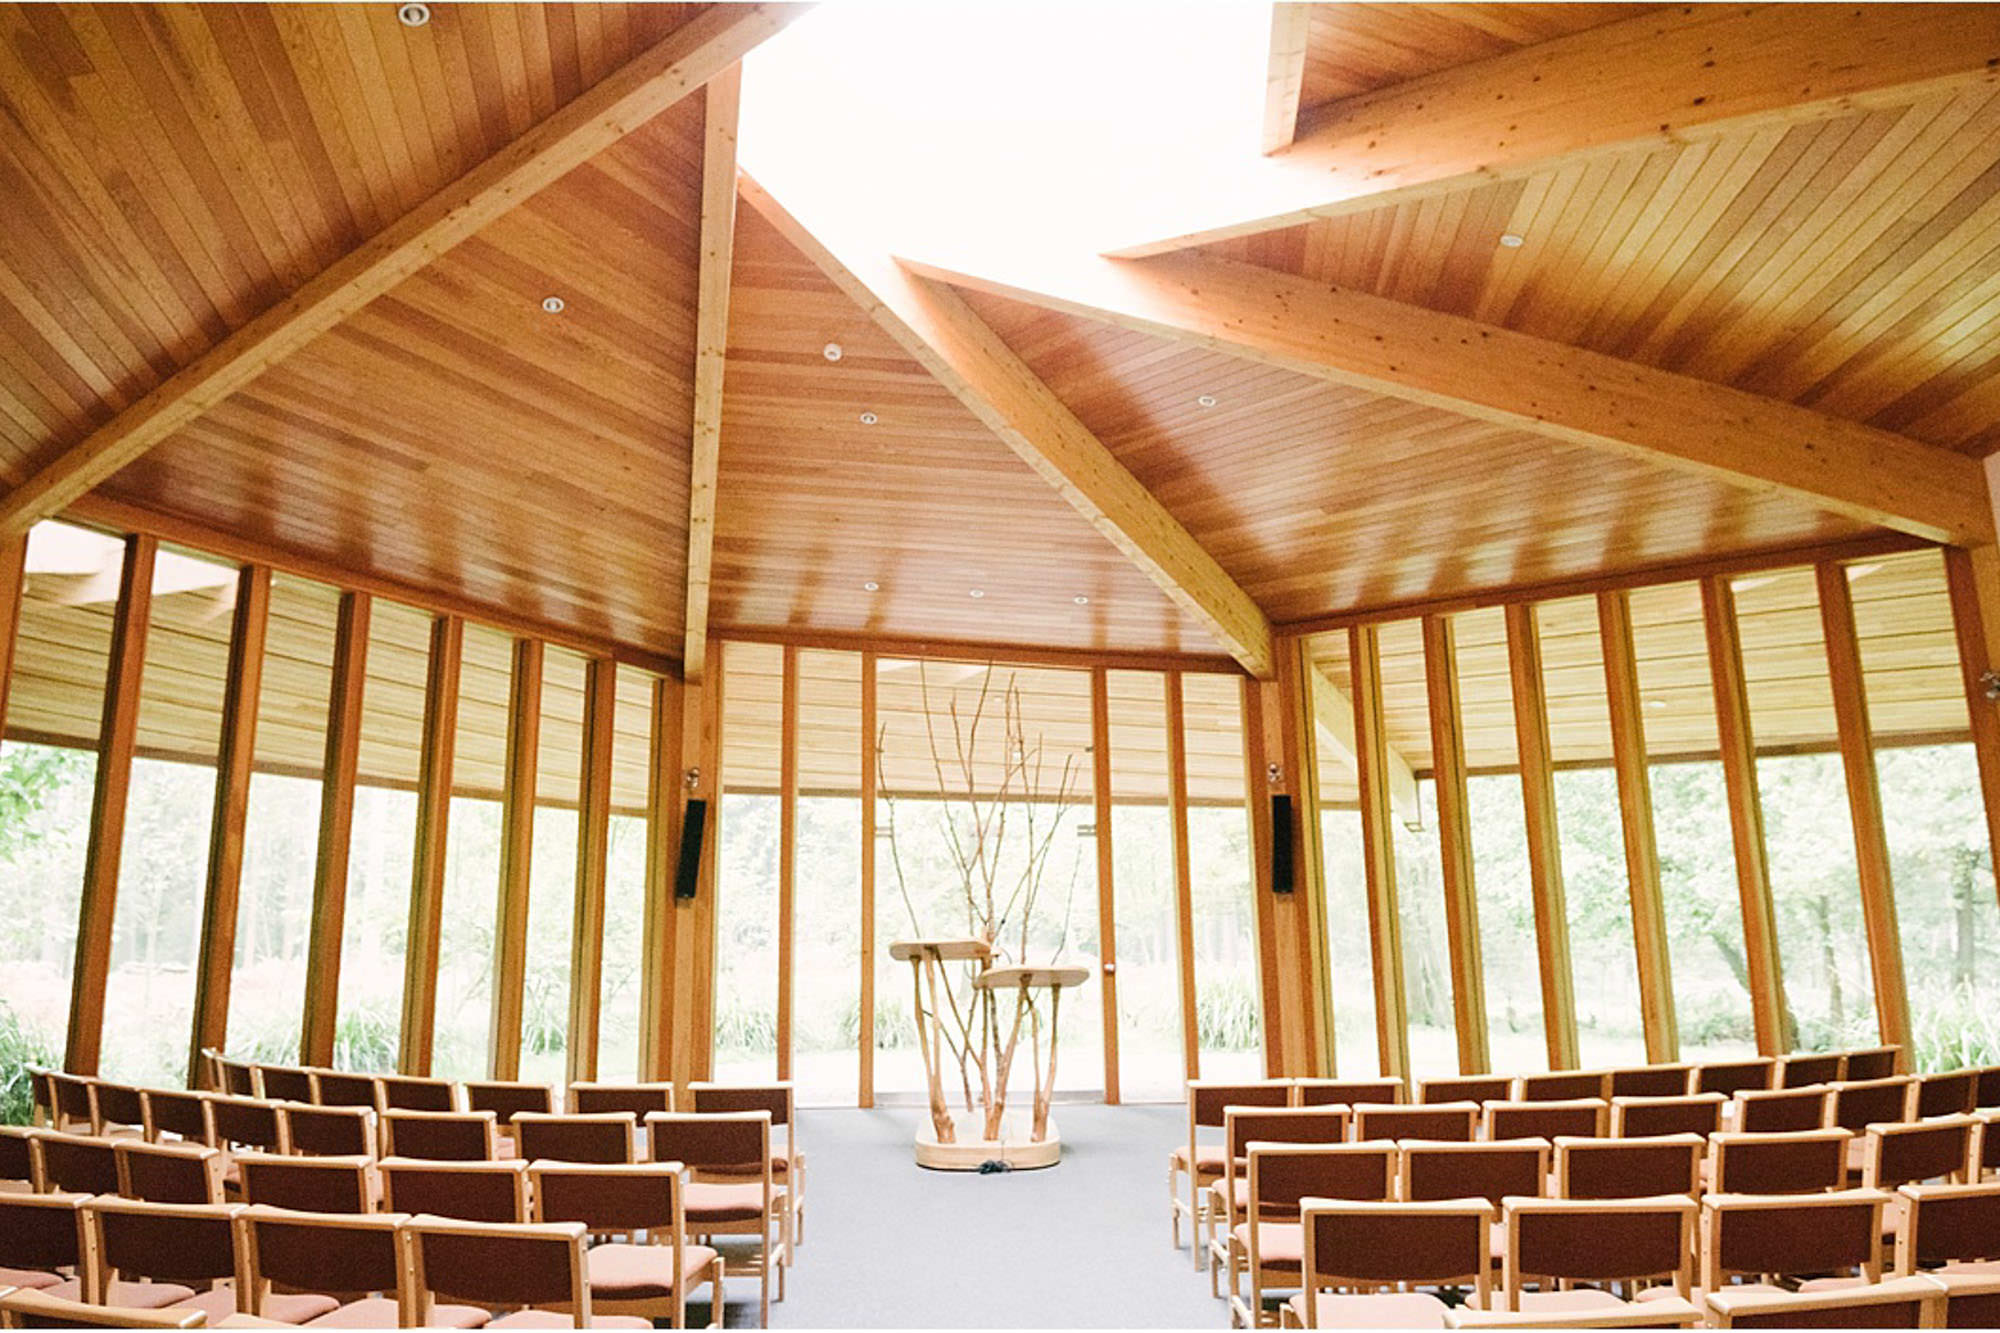 Greenacres Chiltern - South East Woodland Wedding Venue